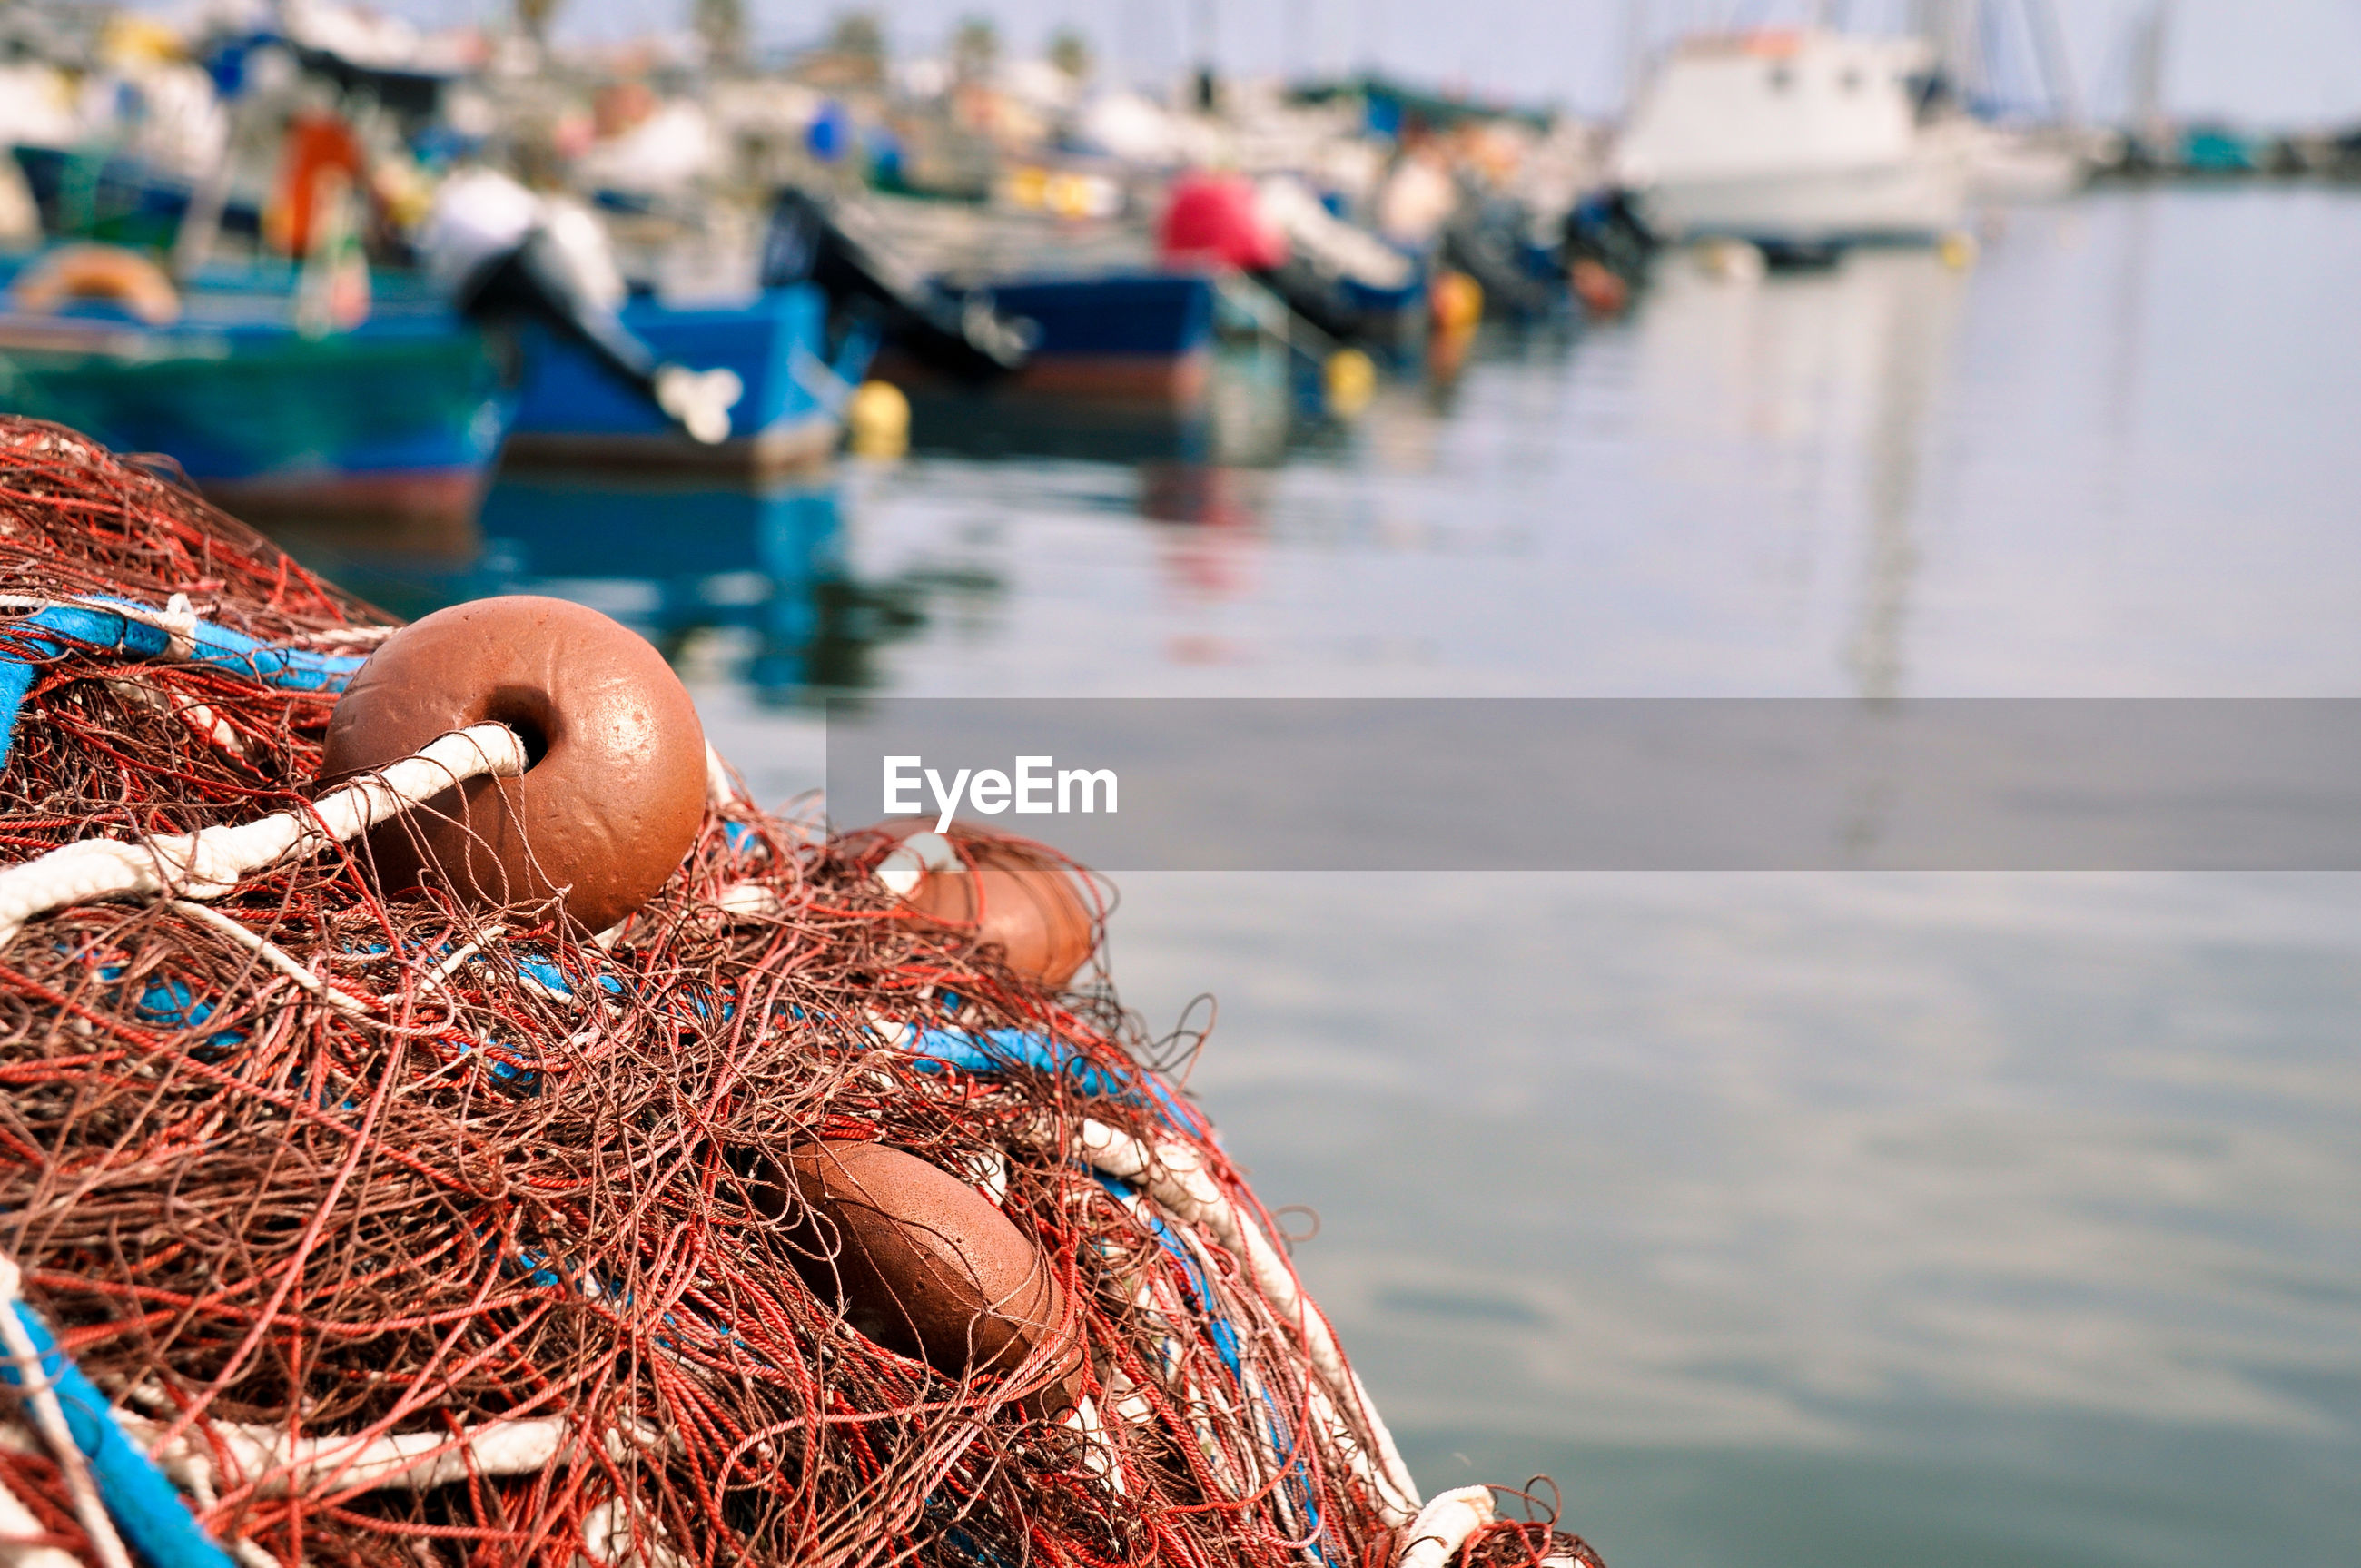 Close-up of fishing net in harbor